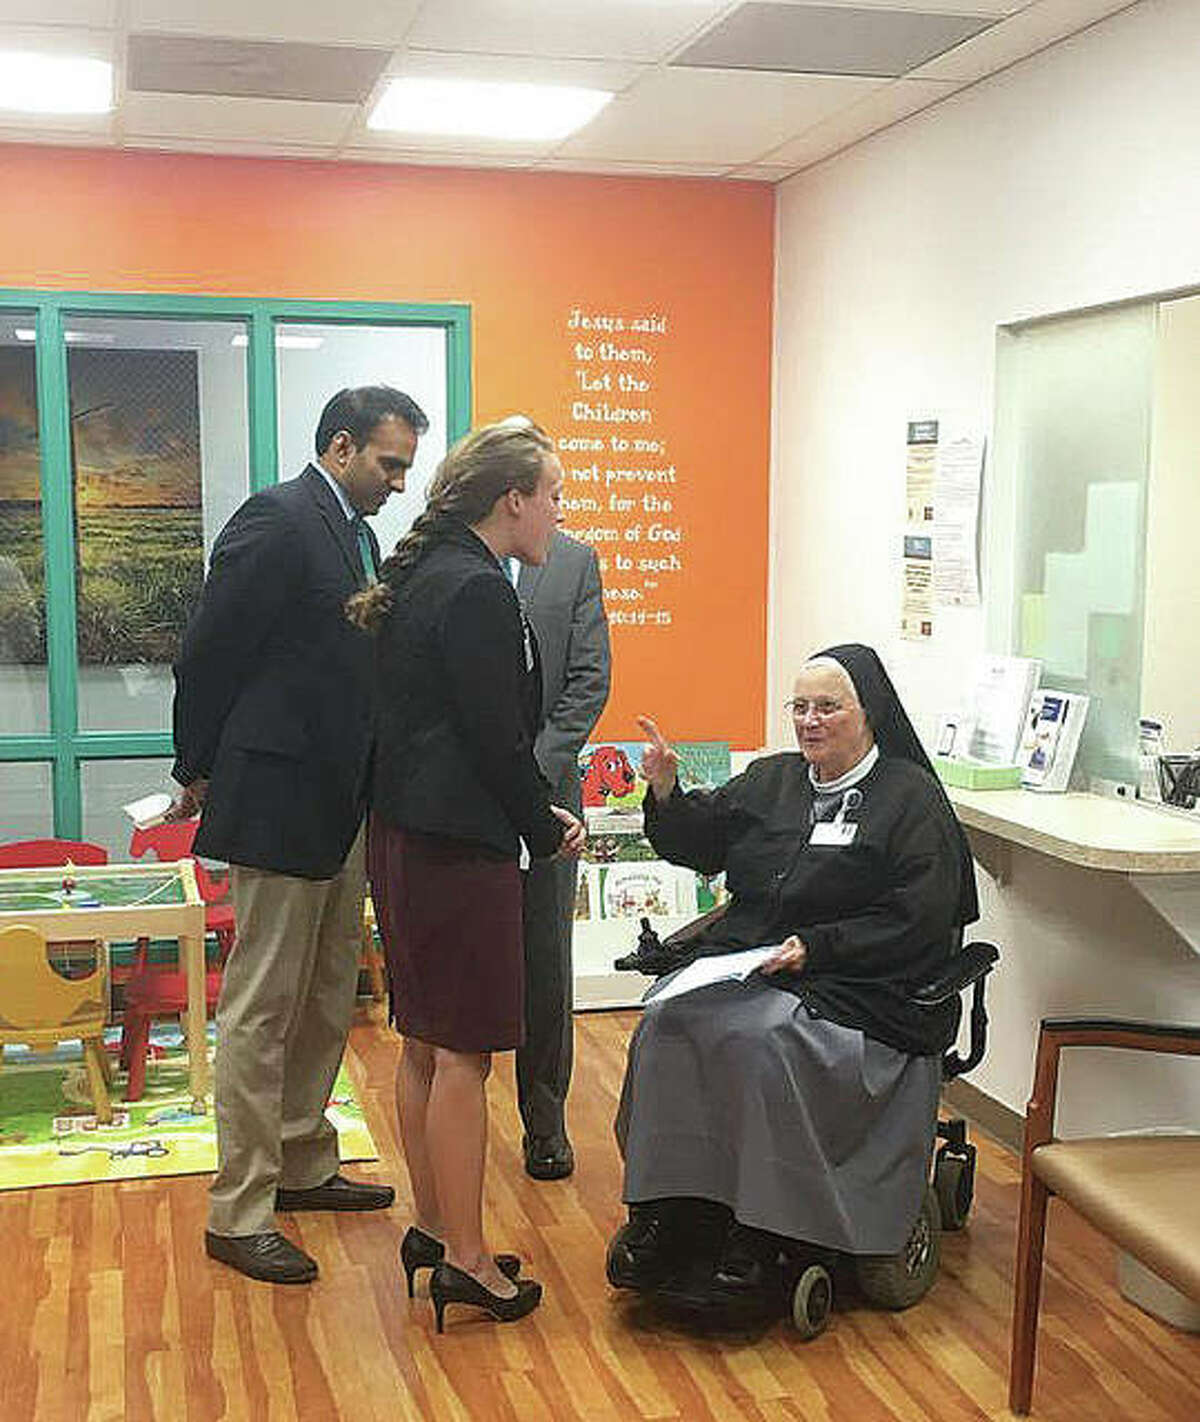 OSF Saint Anthony's Health Center's CEO and President Ajay Pathak, far left, the new pediatric office's family nurse practitioner Elizabeth Schmerold, and OSF Medical Group Operations Manager David Wells, behind Schmerold, talk with Sister M. Dominica, who sang with the Sisters of St. Francis of the Martyr St. George choir at a blessing and open house last Thursday for OSF Saint Anthony's Health Center's first pediatric office.